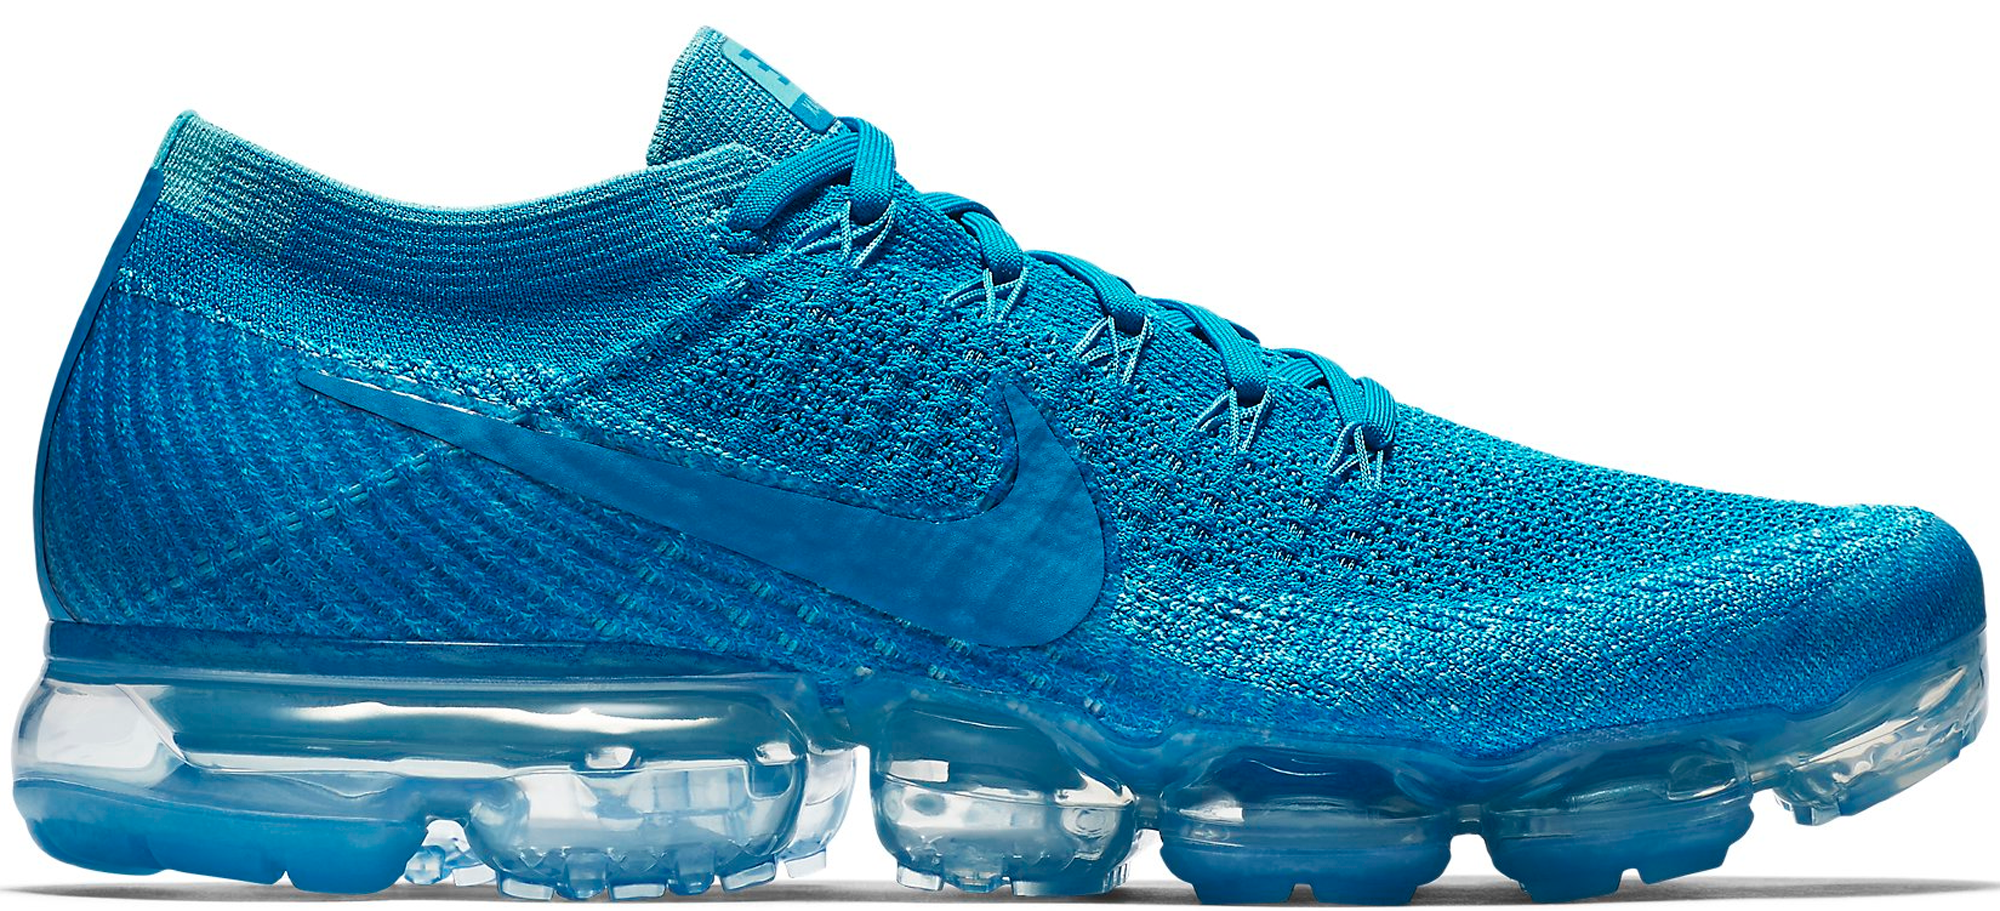 63d0ada6a3a02 Nike Air VaporMax Blue Orbit - StockX News